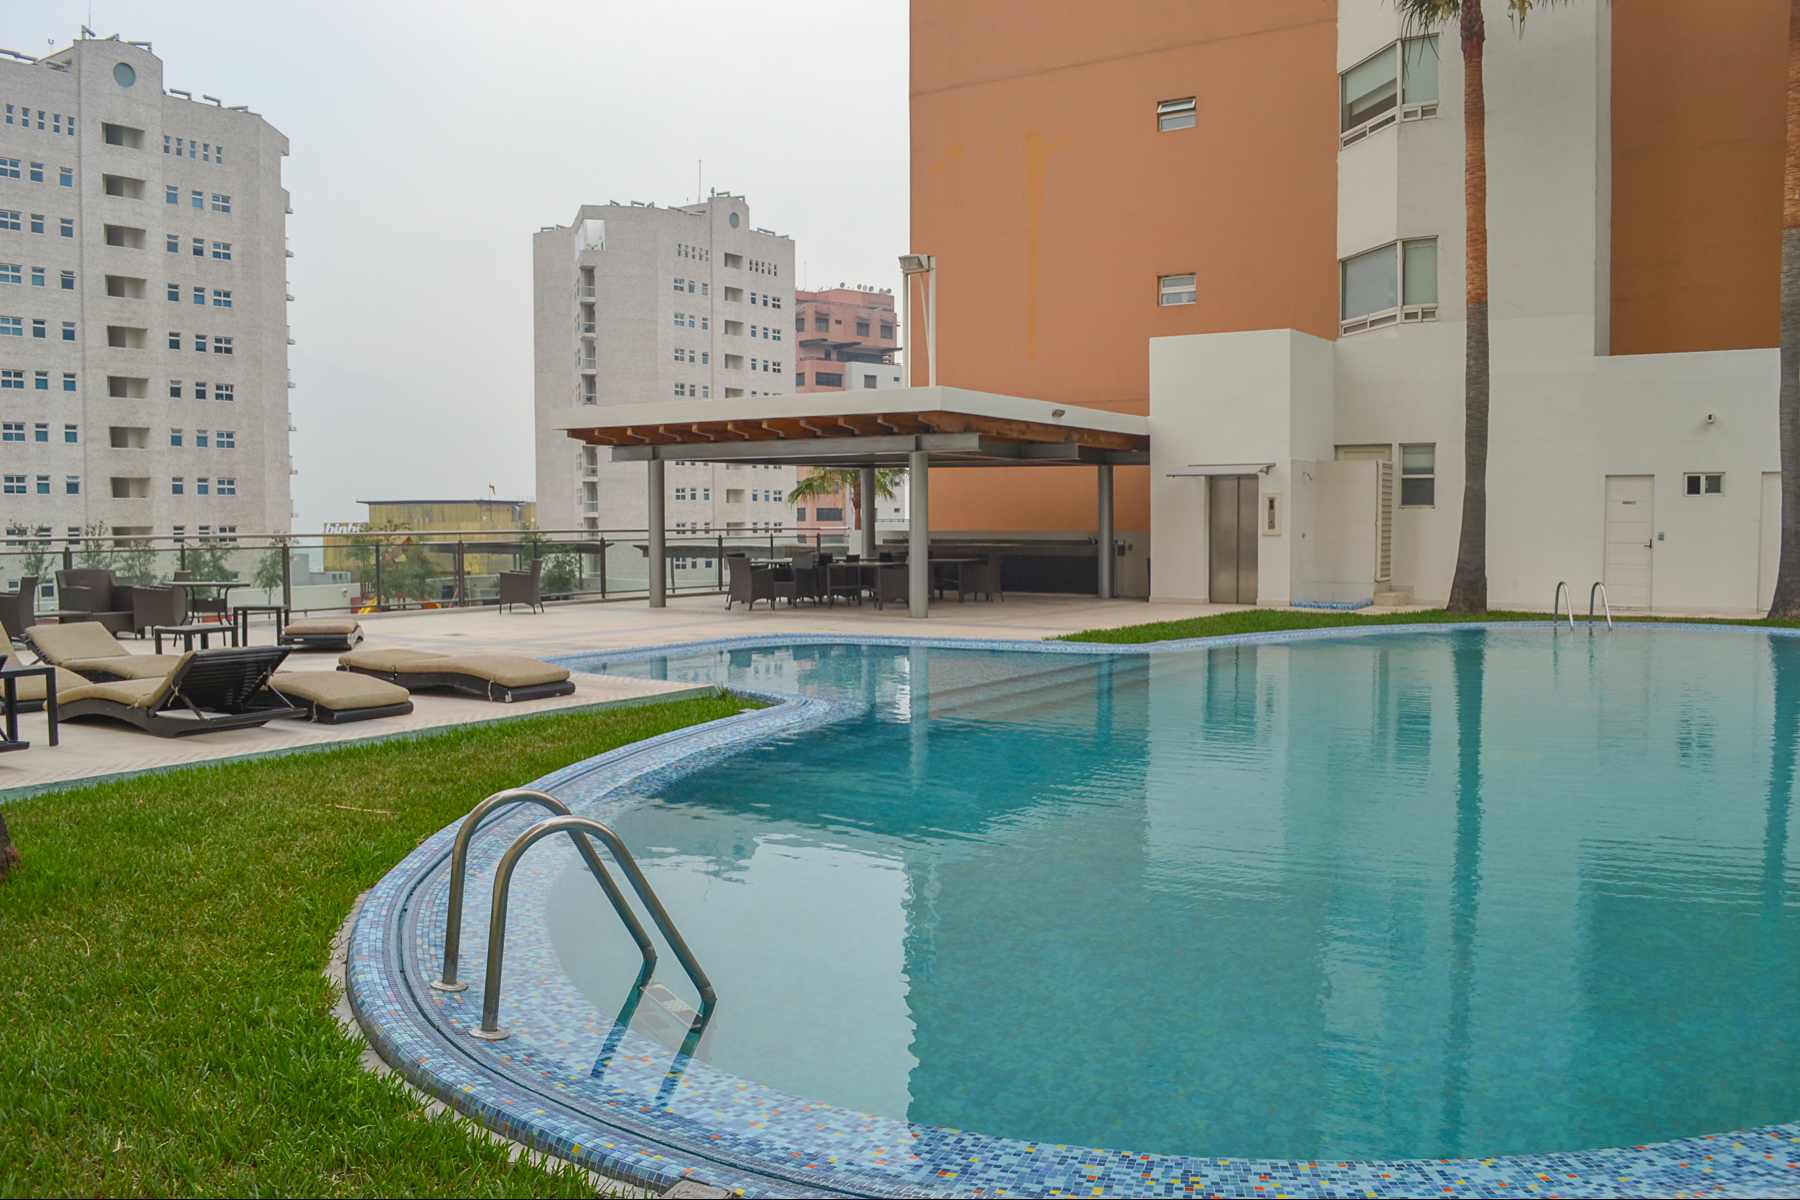 Condominium for Rent at Beautiful Apartment Verona Colonia Residencial Santa Barbara San Pedro Garza Garcia, 66226 Mexico